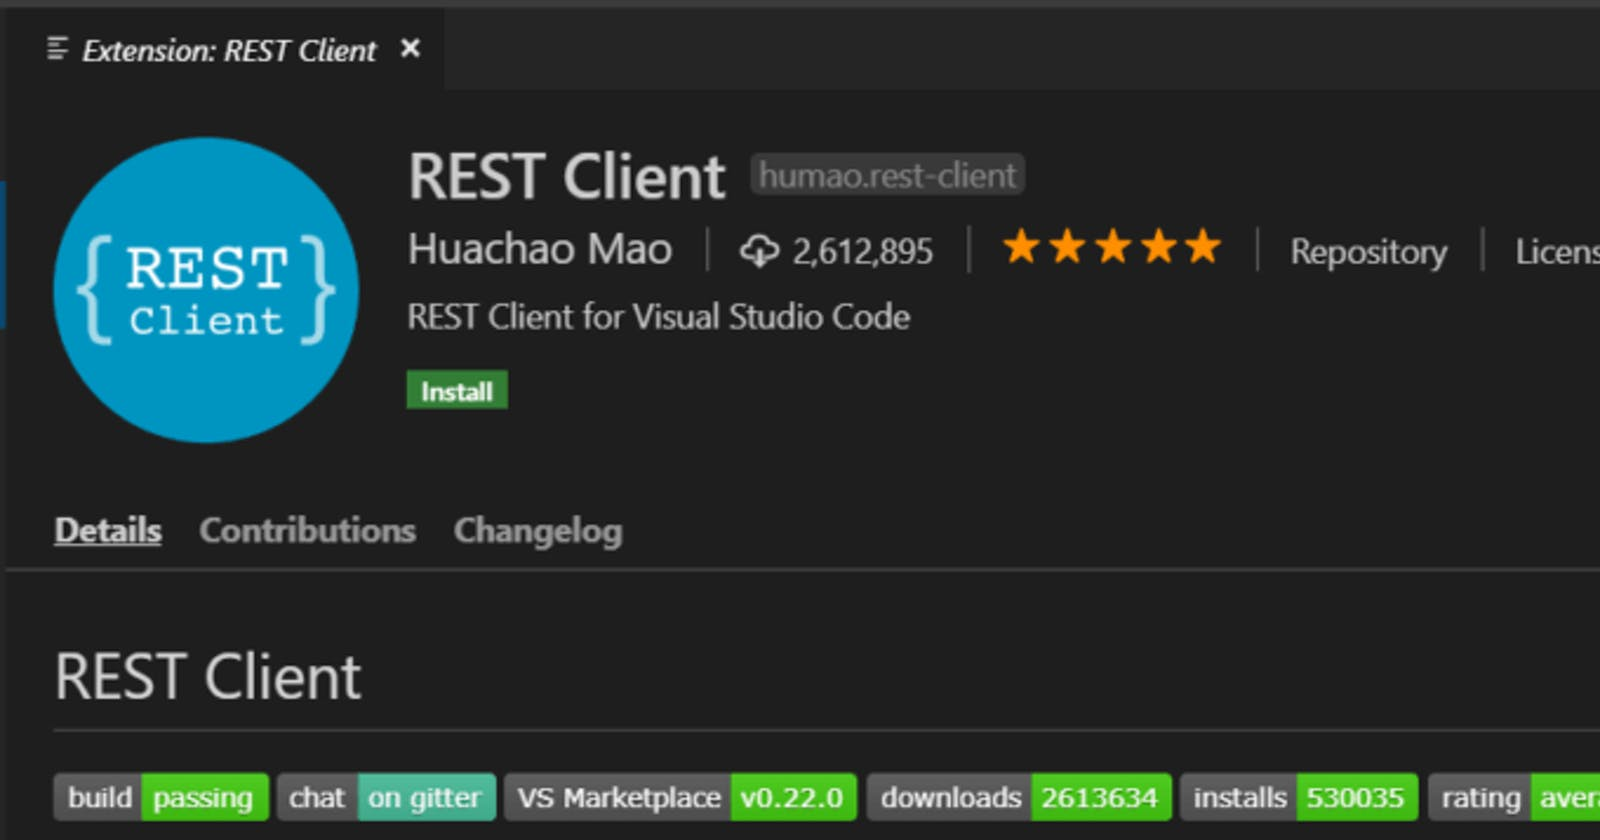 How to make REST calls from inside VS Code?